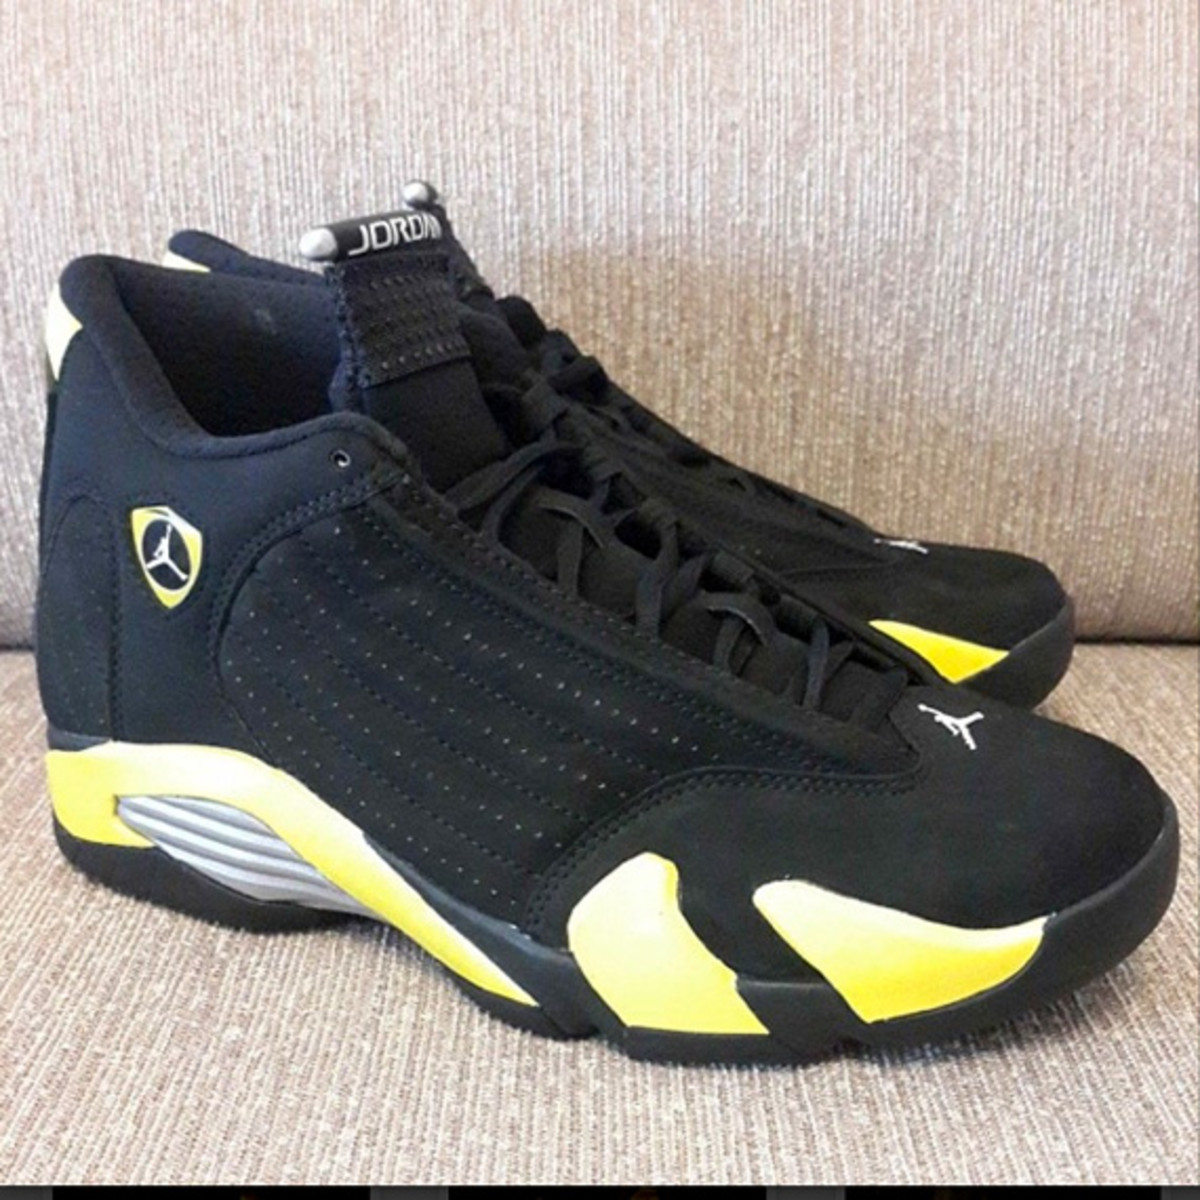 """There is plenty to celebrate about this coming July 4th as Jordan Brand is  to launch the Air Jordan 14 """"Thunder"""" on that day. e37a0a18e"""